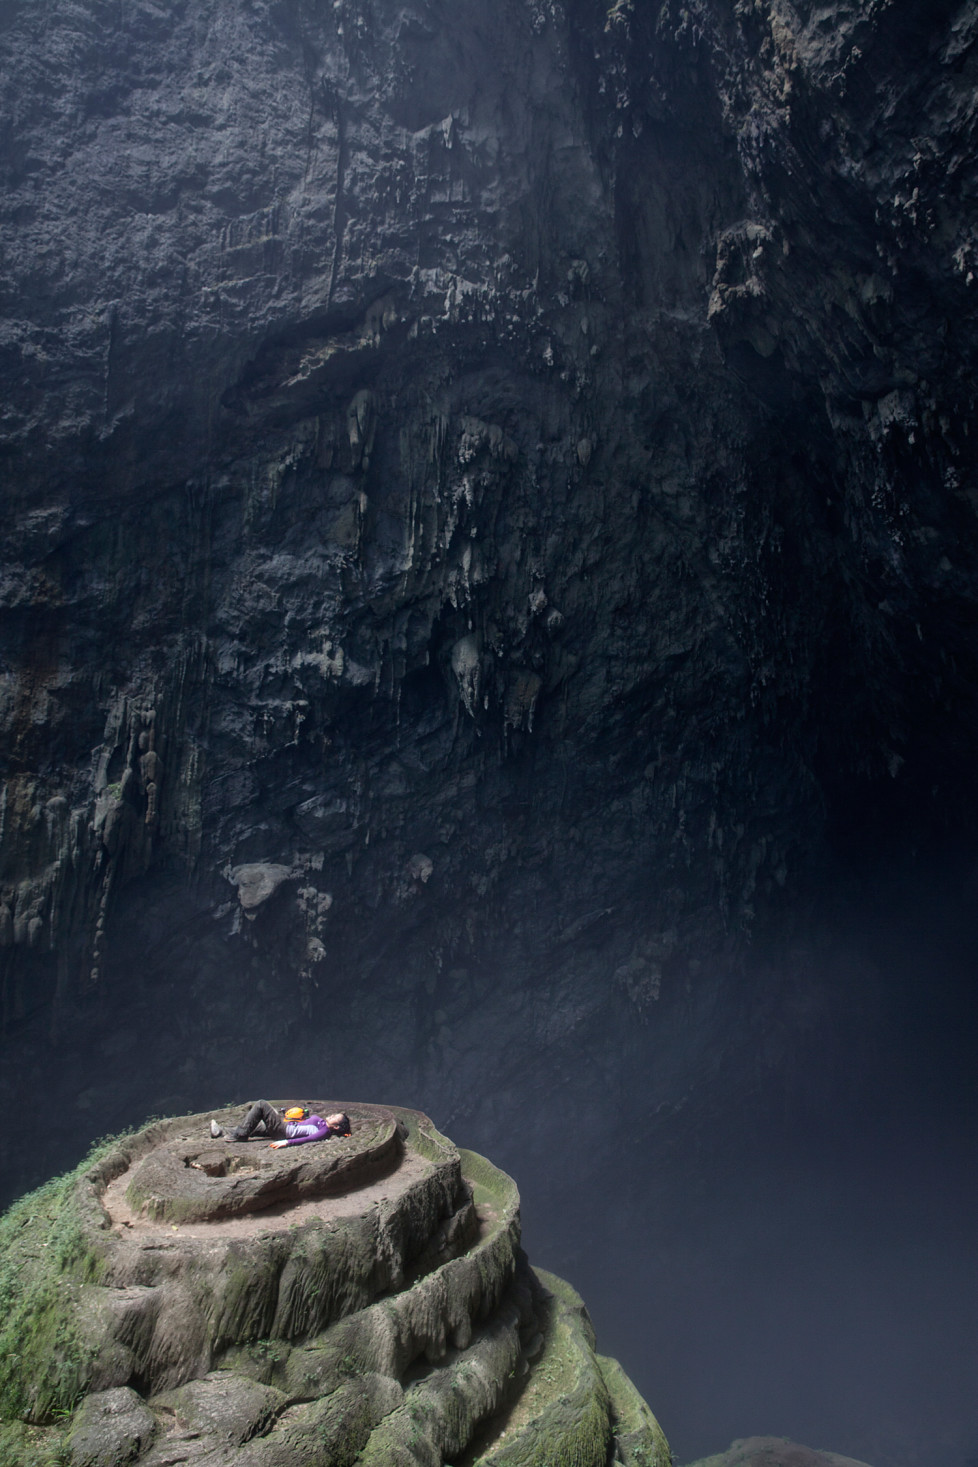 First Donlie in Son Doong Cave. Foto: Tanja Demarmels